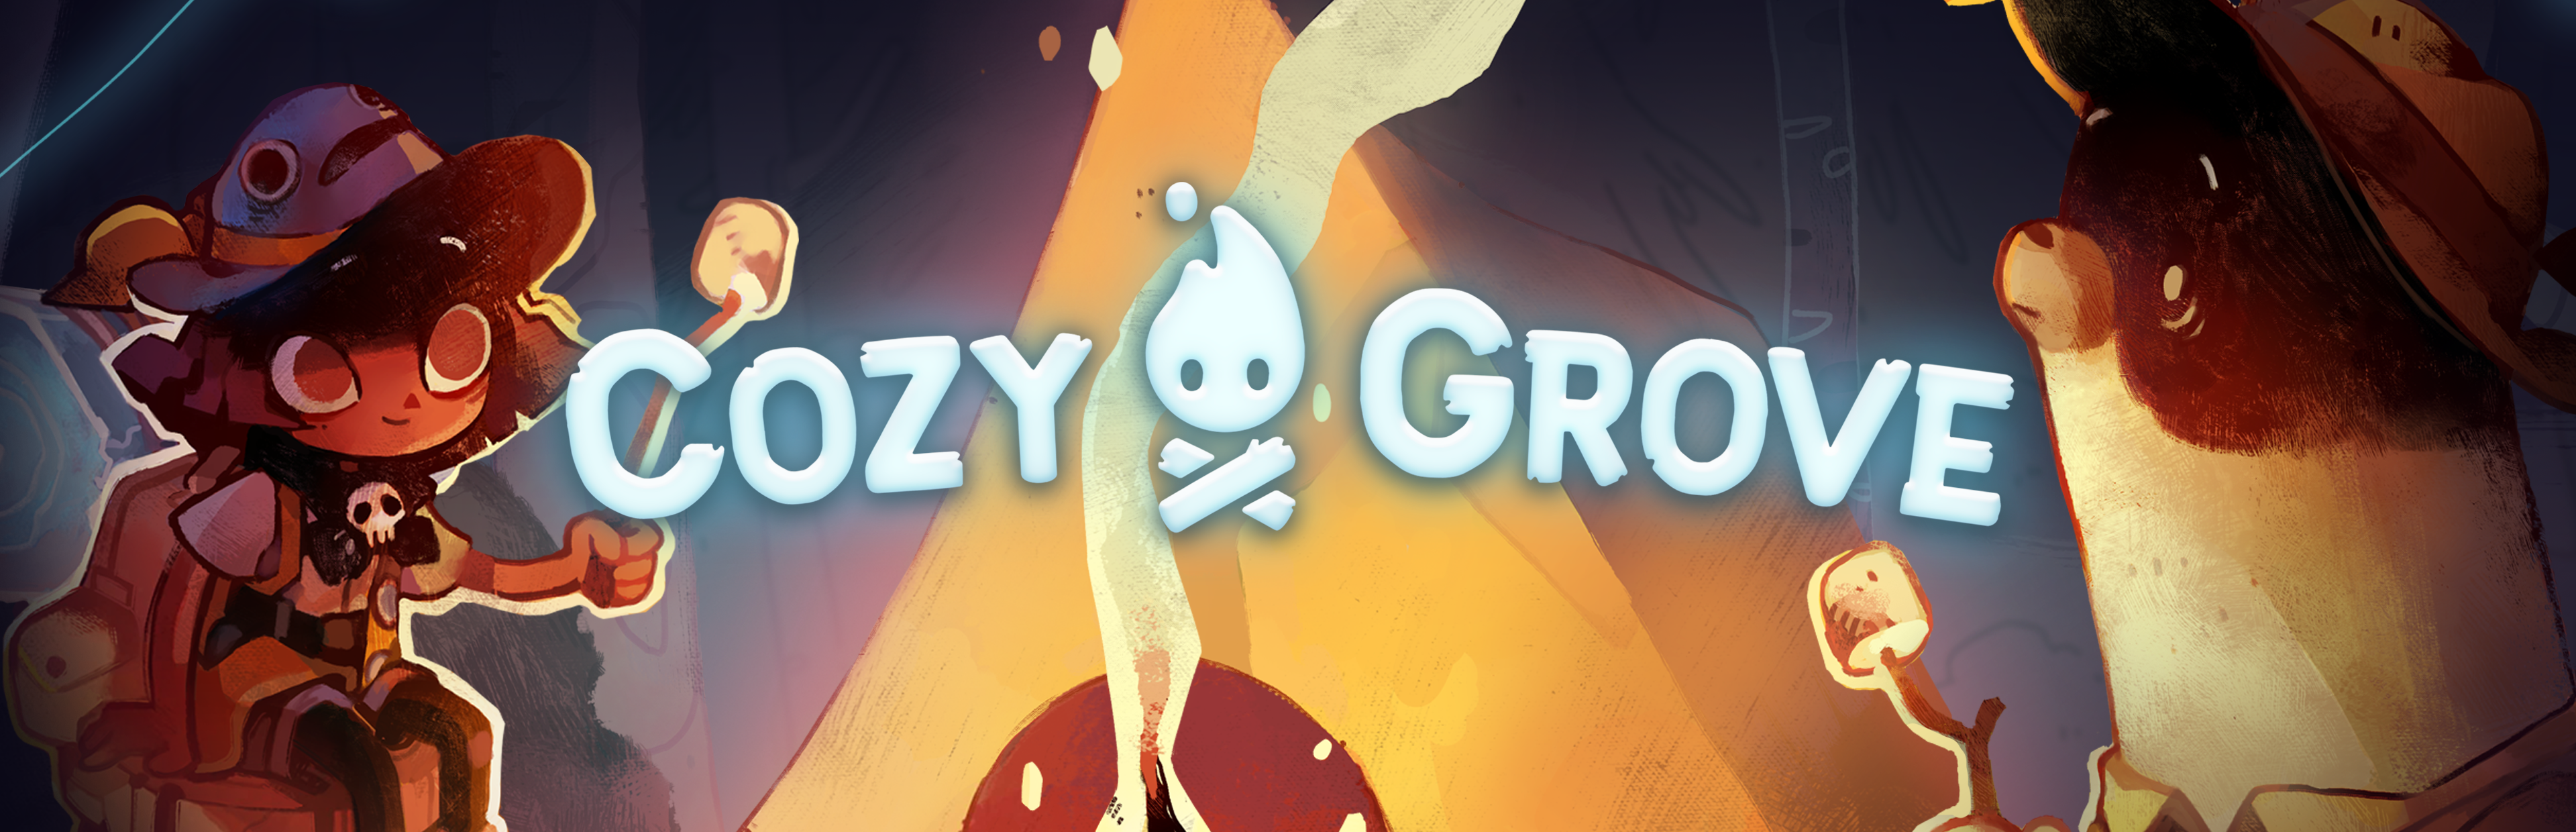 cozy grove long key art